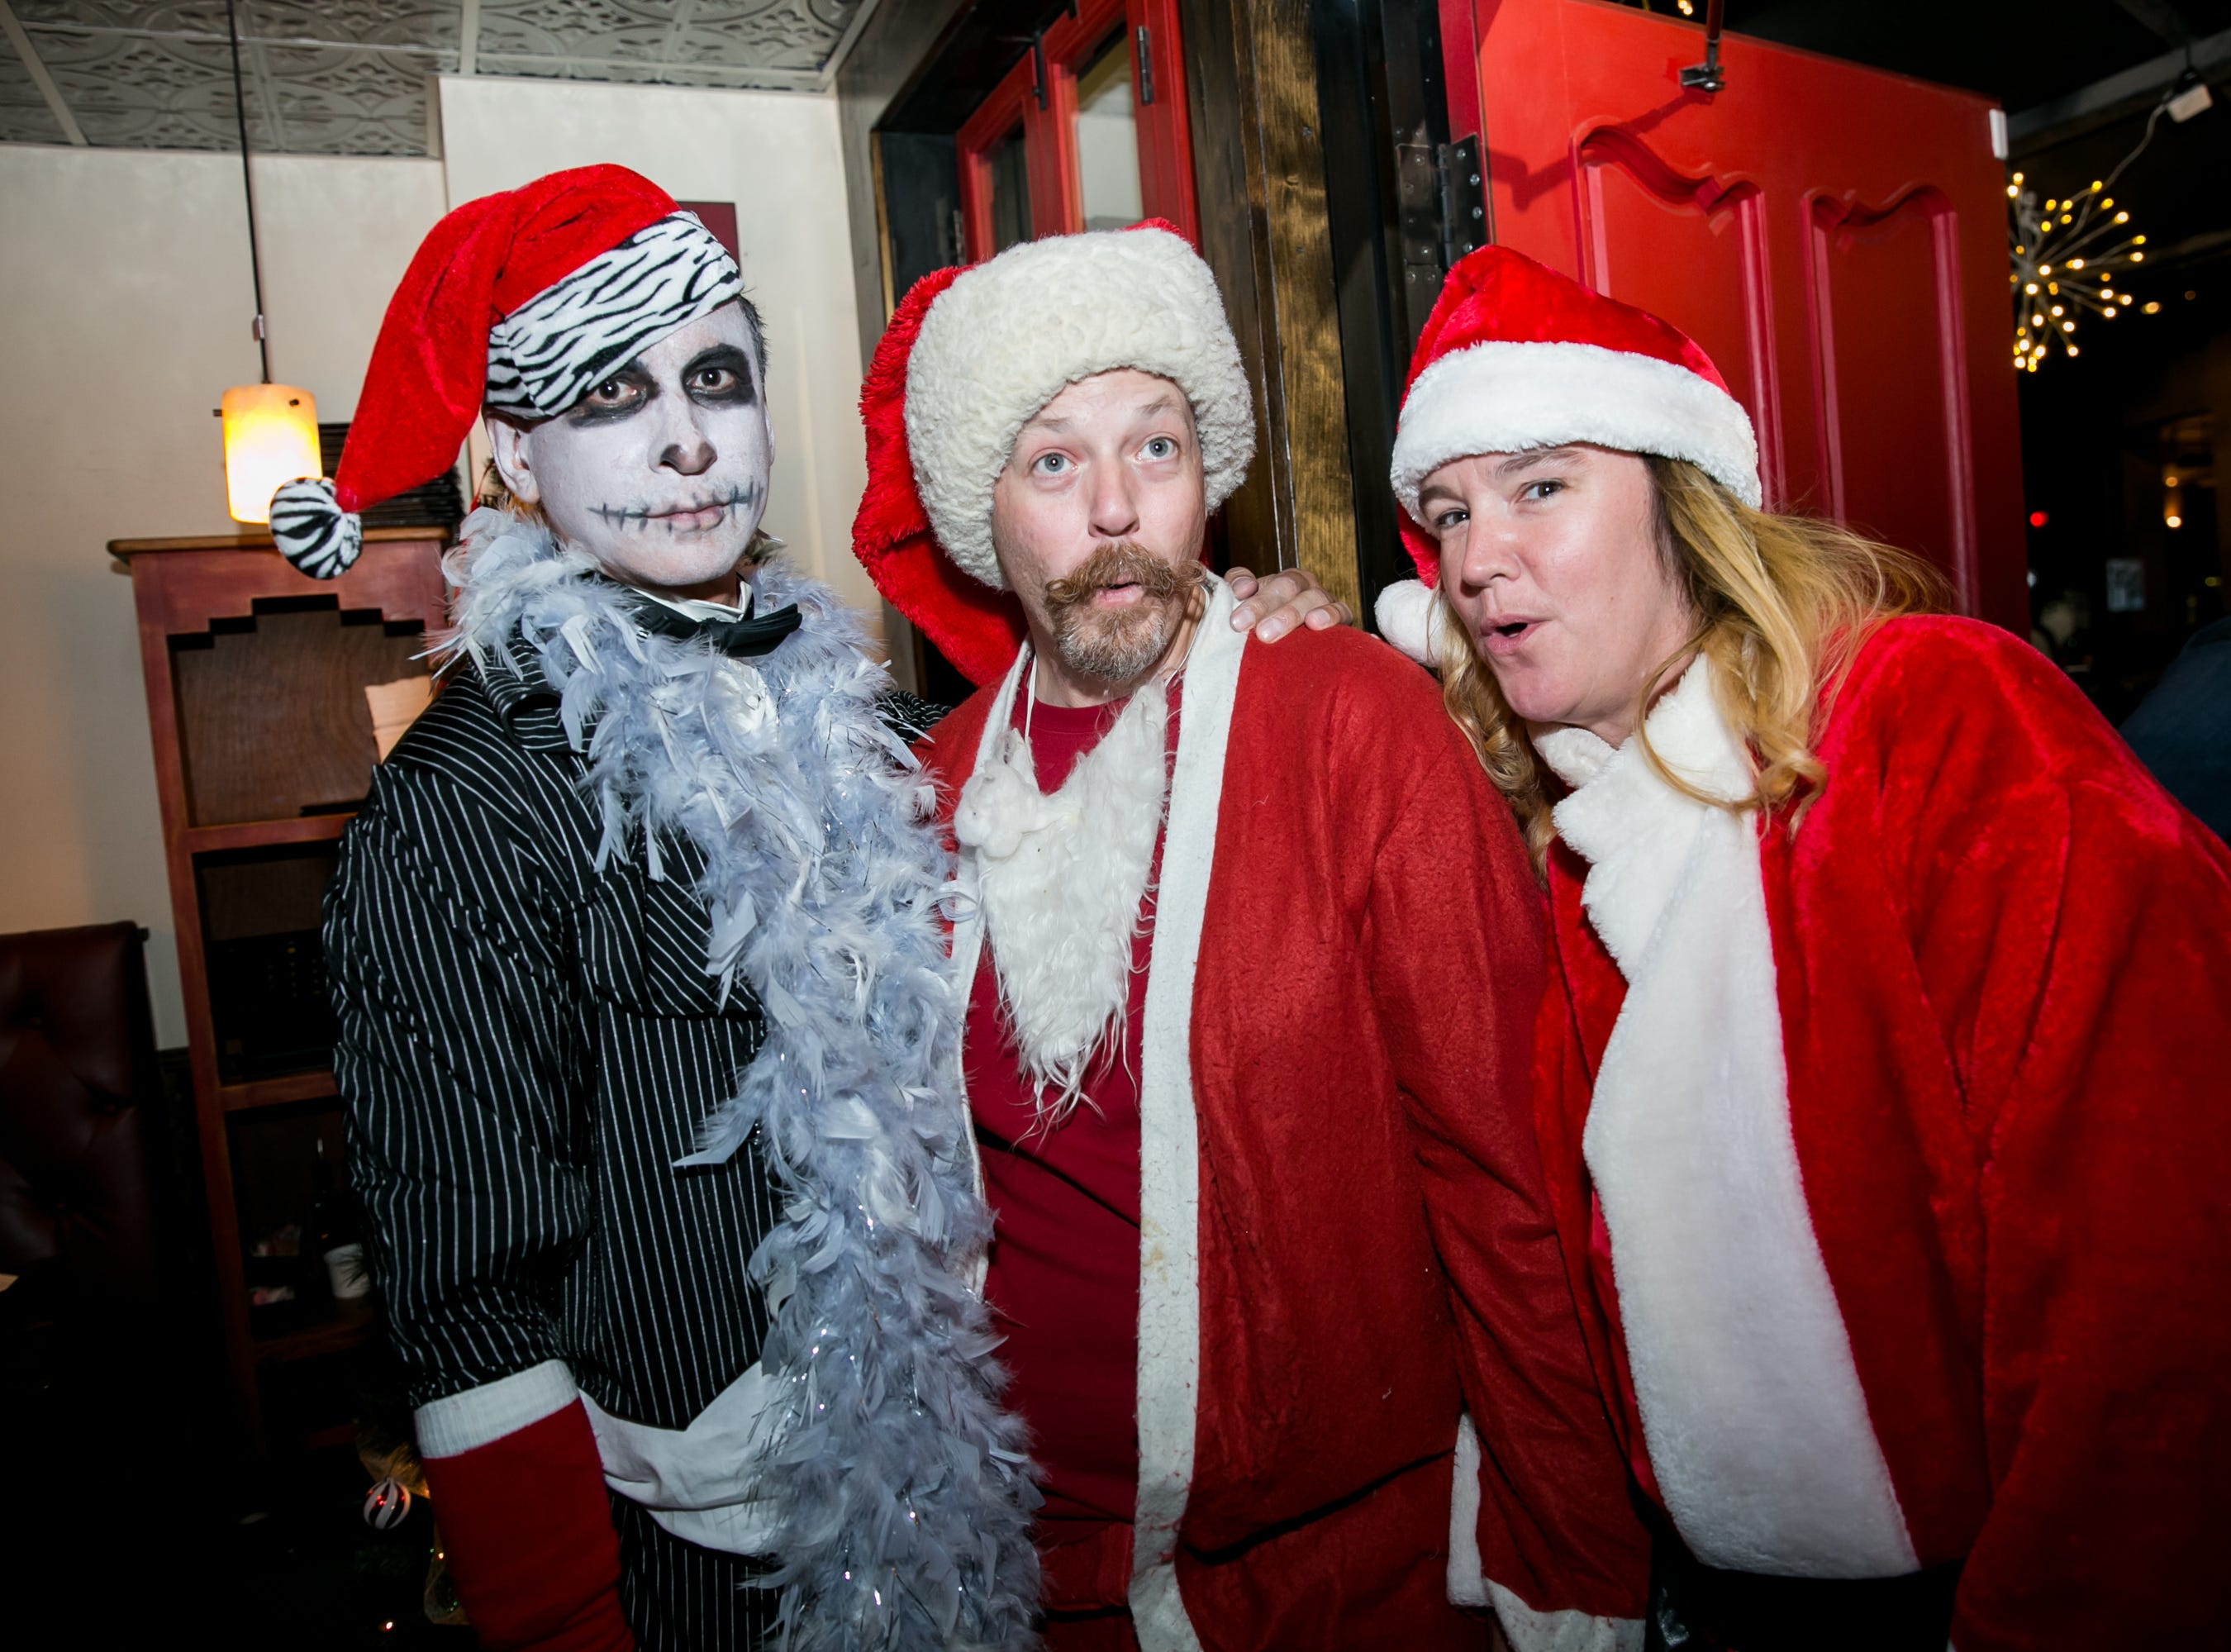 These Santas got some spooky flair at The Kettle Black during Santarchy on Saturday, December 8, 2018.